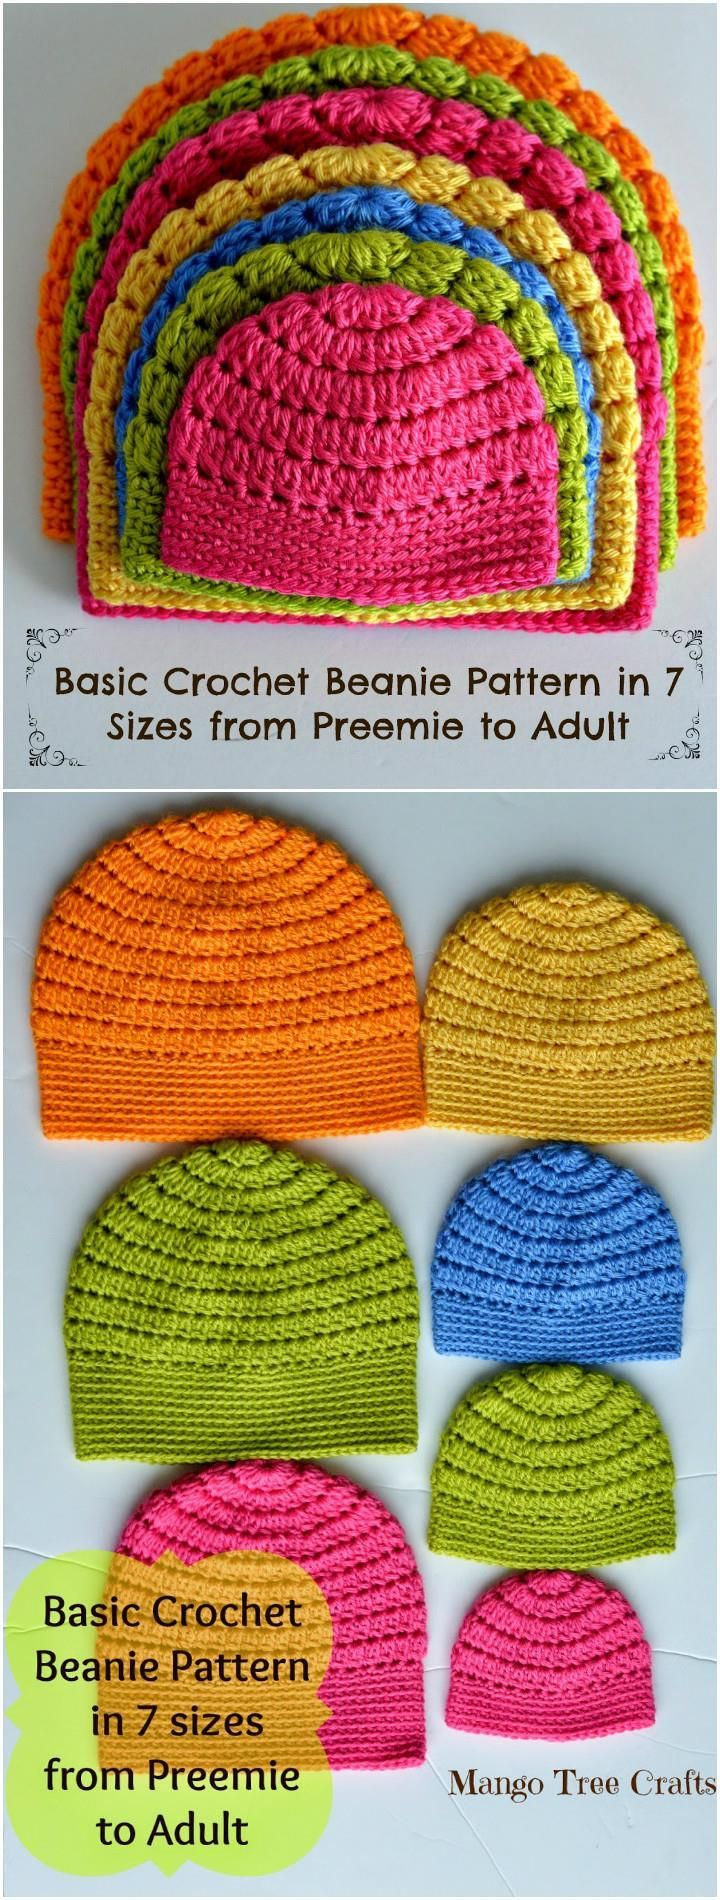 17 free crochet baby beanie hat patterns mango tree crochet mango tree crafts crochet hat sizes 17 free crochet baby beanie hat patterns 101 bankloansurffo Image collections